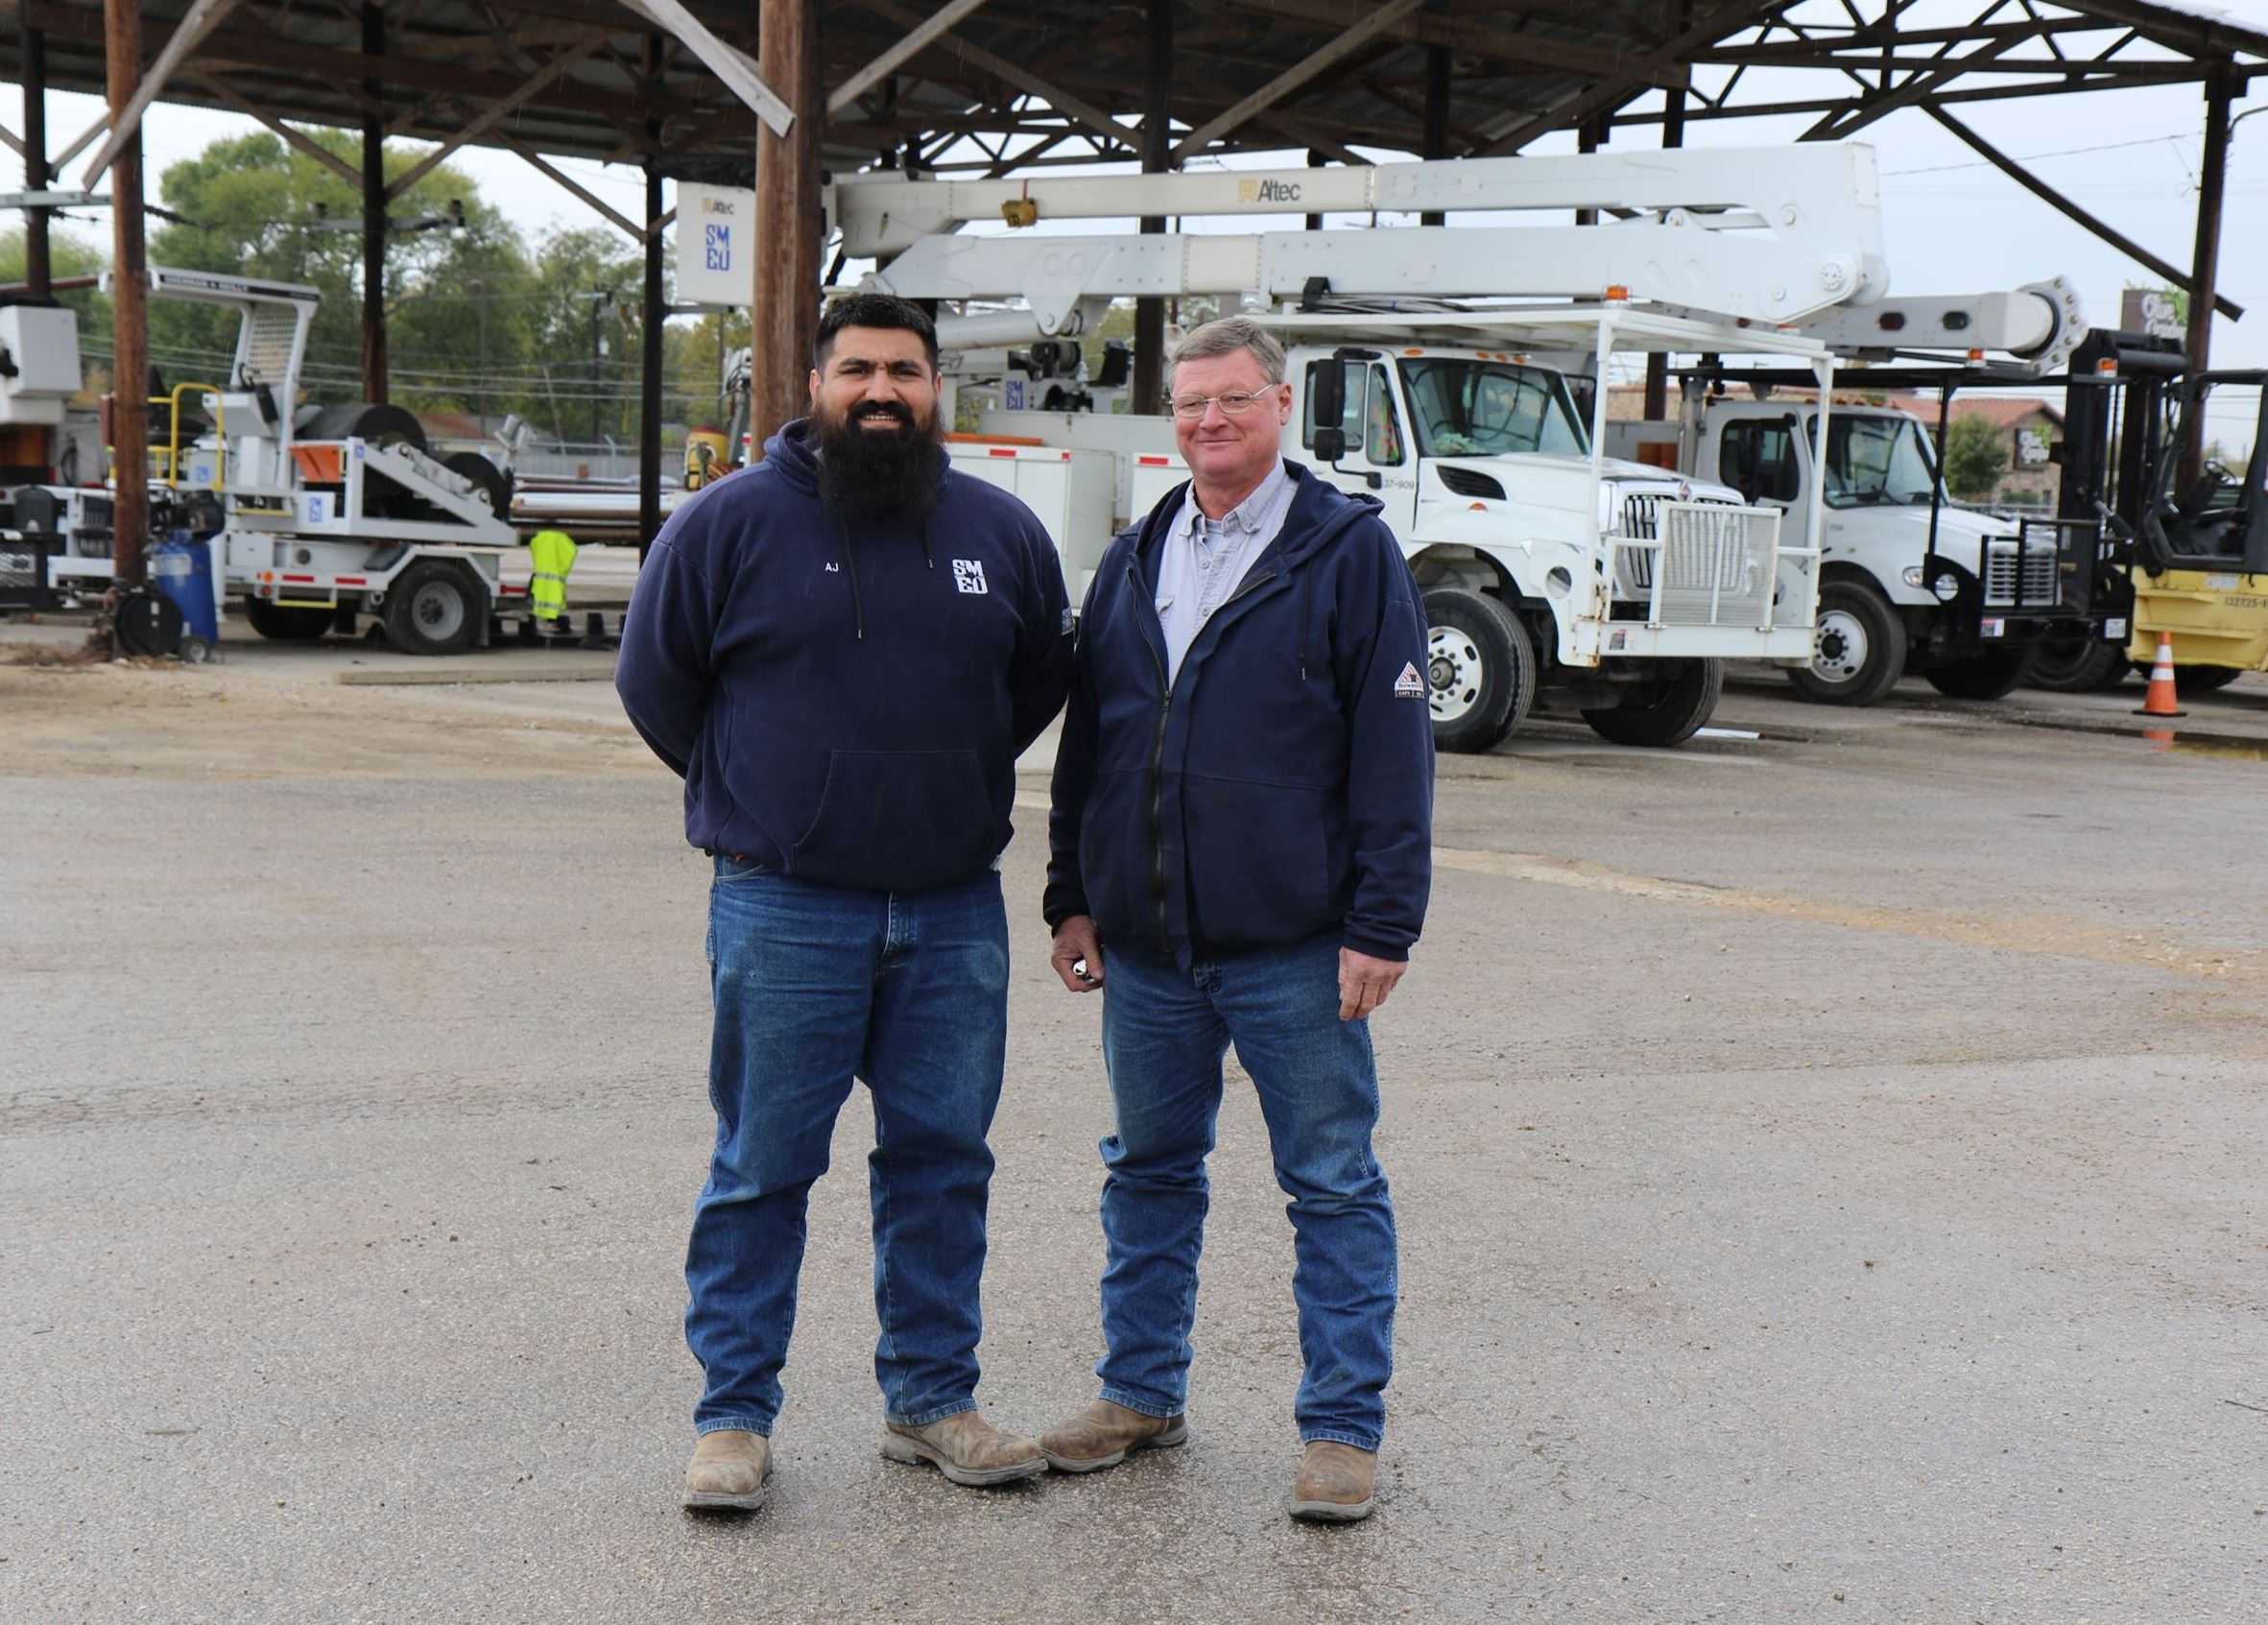 Photo of Longoria and Koehlers standing in lot of SMEU in front of utility vehicles